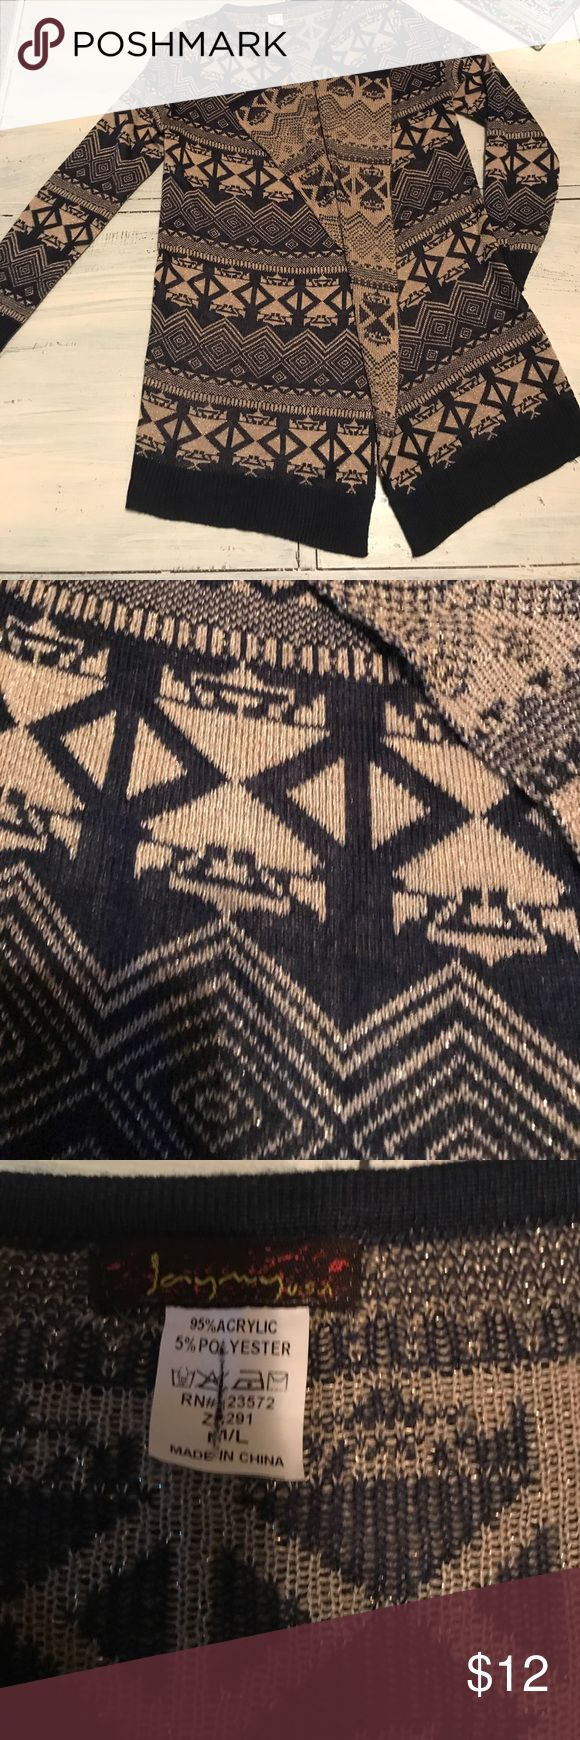 Tribal print cardigan Tunic length tribal print cardigan with metallic gold and navy print ... in excellent condition jaymy Sweaters Cardigans